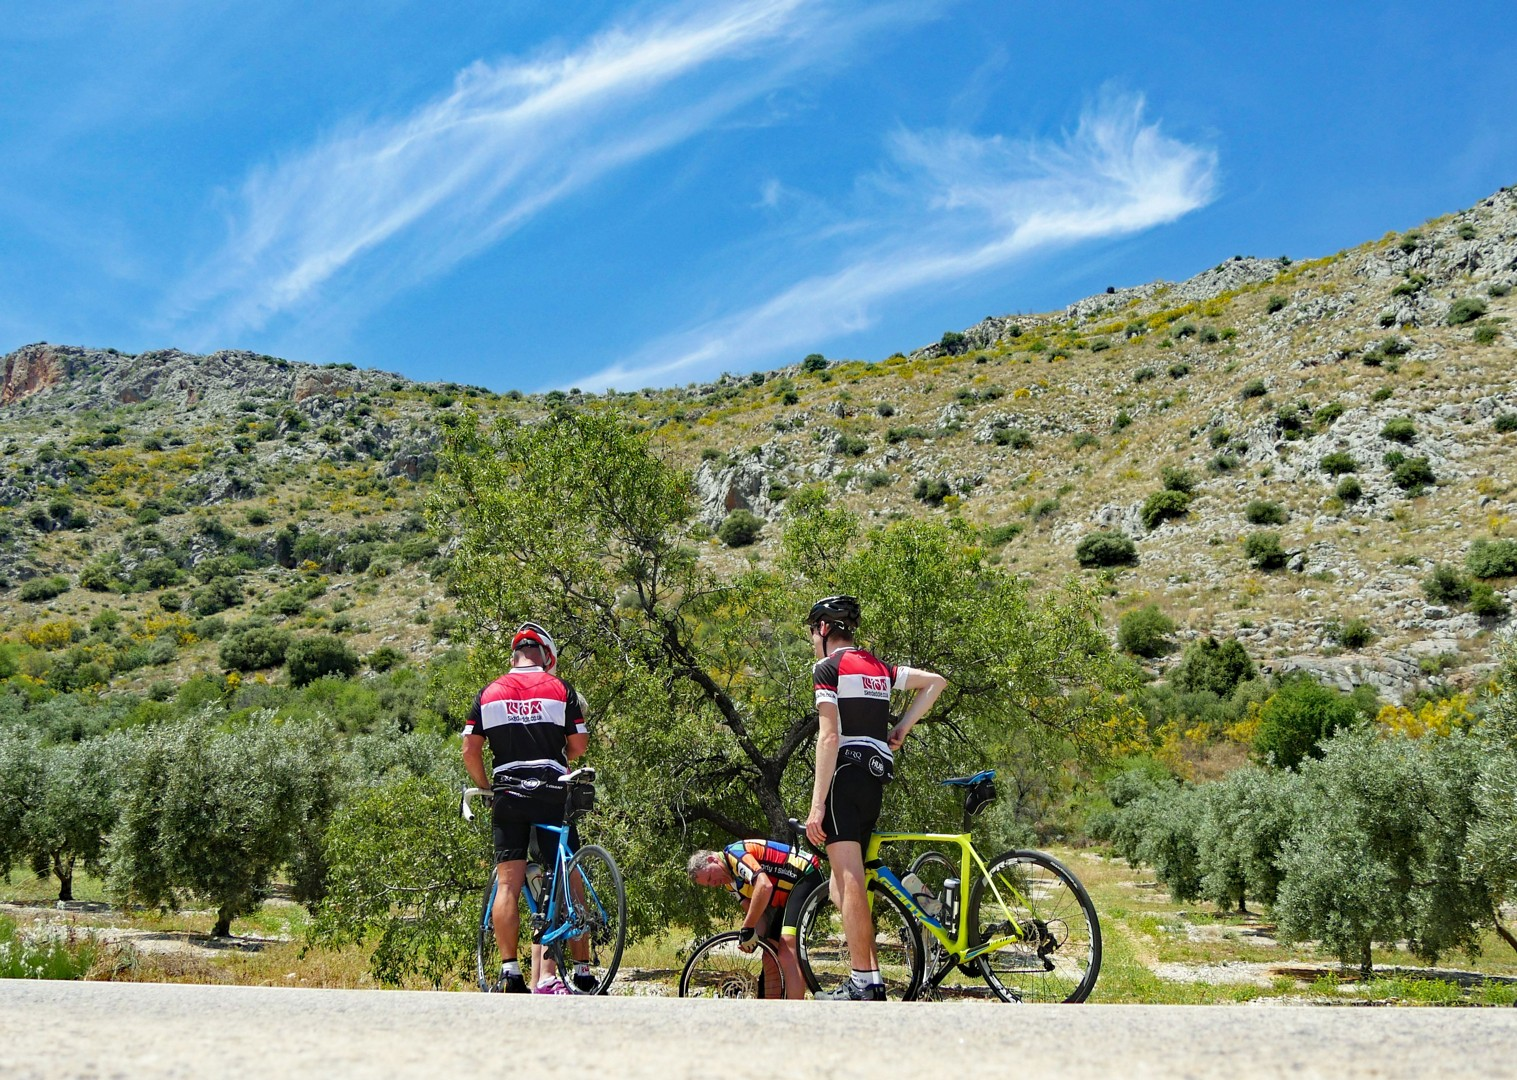 scenic-road-cycling-basque-country.jpg - Spain - Basque Country to Andalucia - North to South - 16 Day - Guided Road Cycling Holiday - Road Cycling